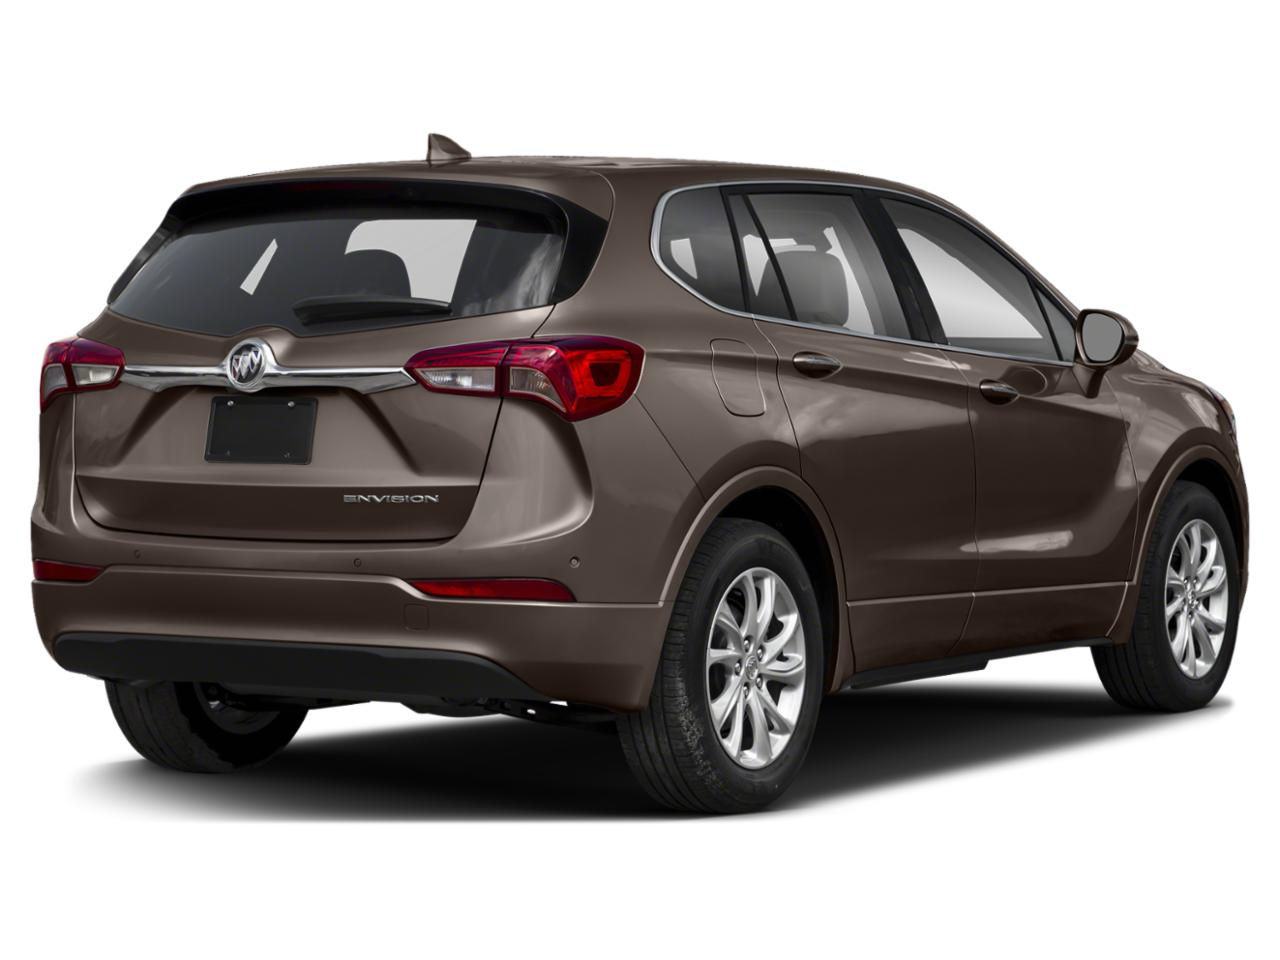 2020 buick envision for sale at dennis chevrolet buick gmc